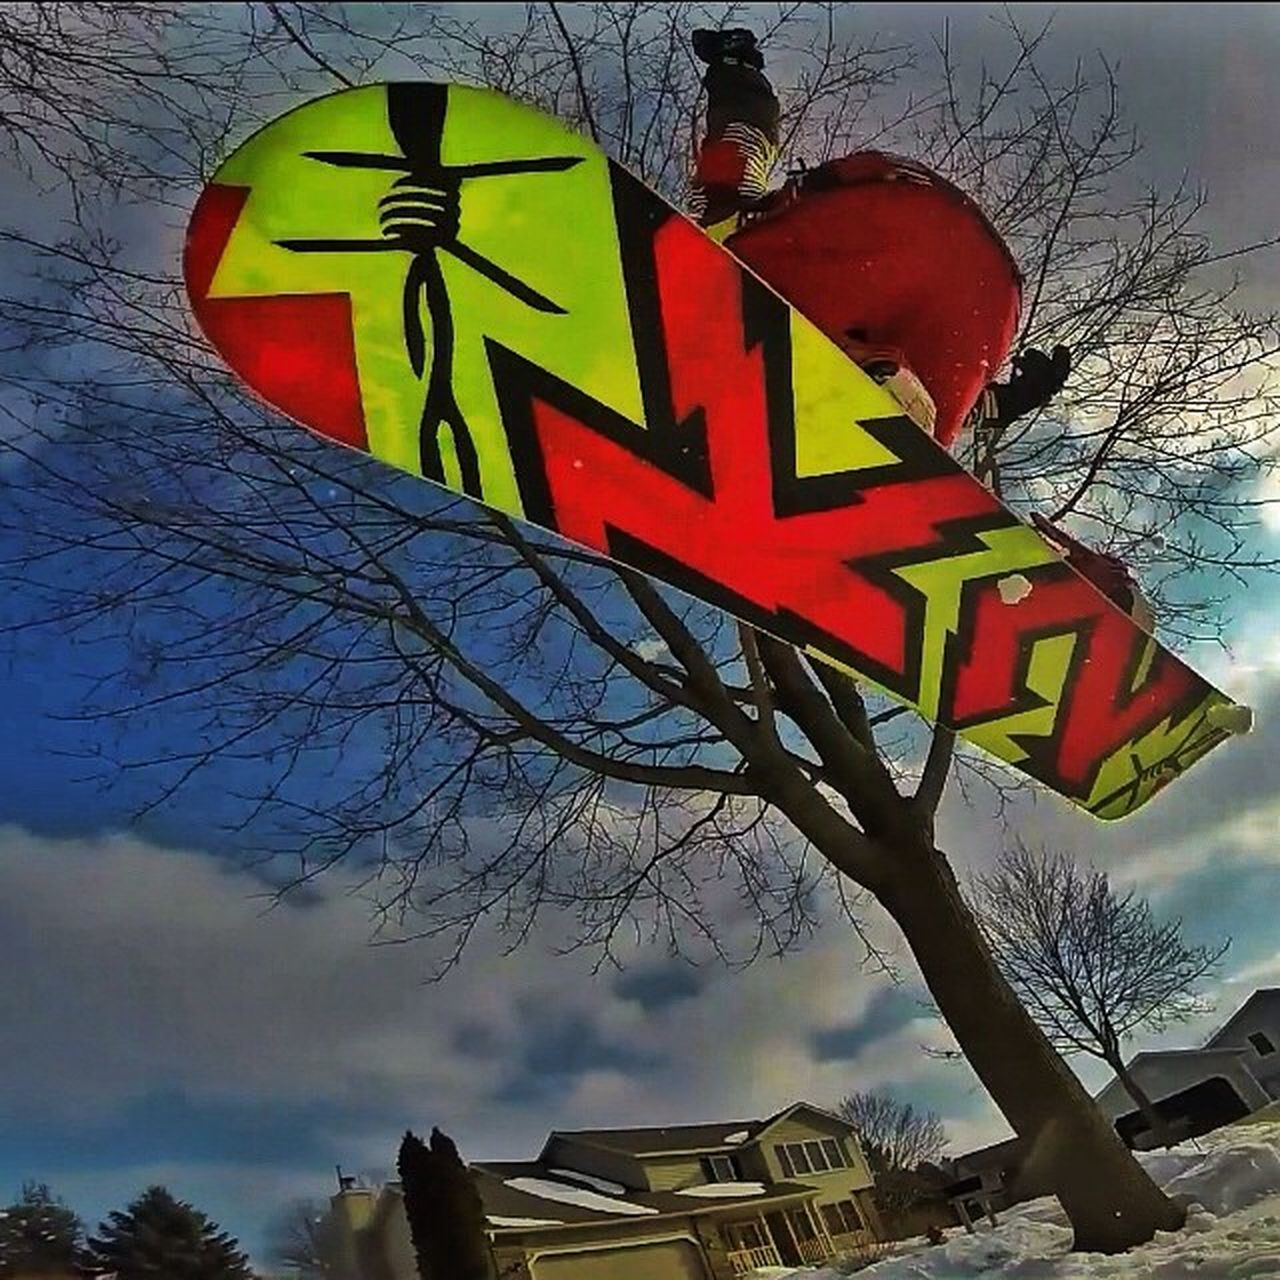 A cool shot📷 looking up at me doing a 180 off of the rail me and @ross_what_up329 made yesterday👌🏂❄️. ---------------------------------------Snowboarding Snowboard Snowboards 😀 Snowboarder Snowboarding K2 Ride Burton  Burtonsnowboards Gopro Goprohero Goprohero3 Goprooftheday Goprouniverse Goprohero3plus Winter 🌅